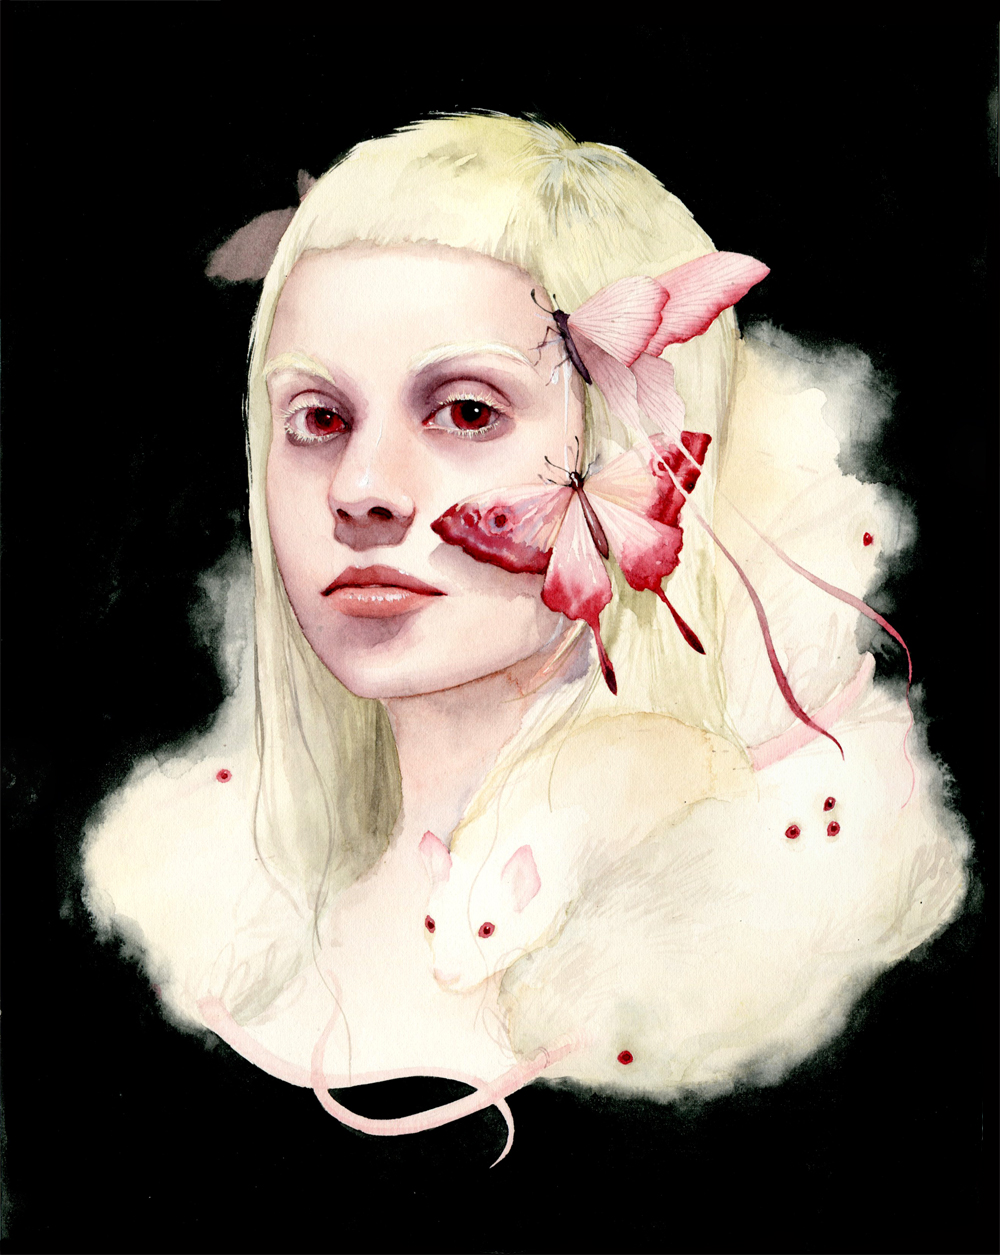 Soey Milk – yolandi visser – Watercolor and gouache on paper